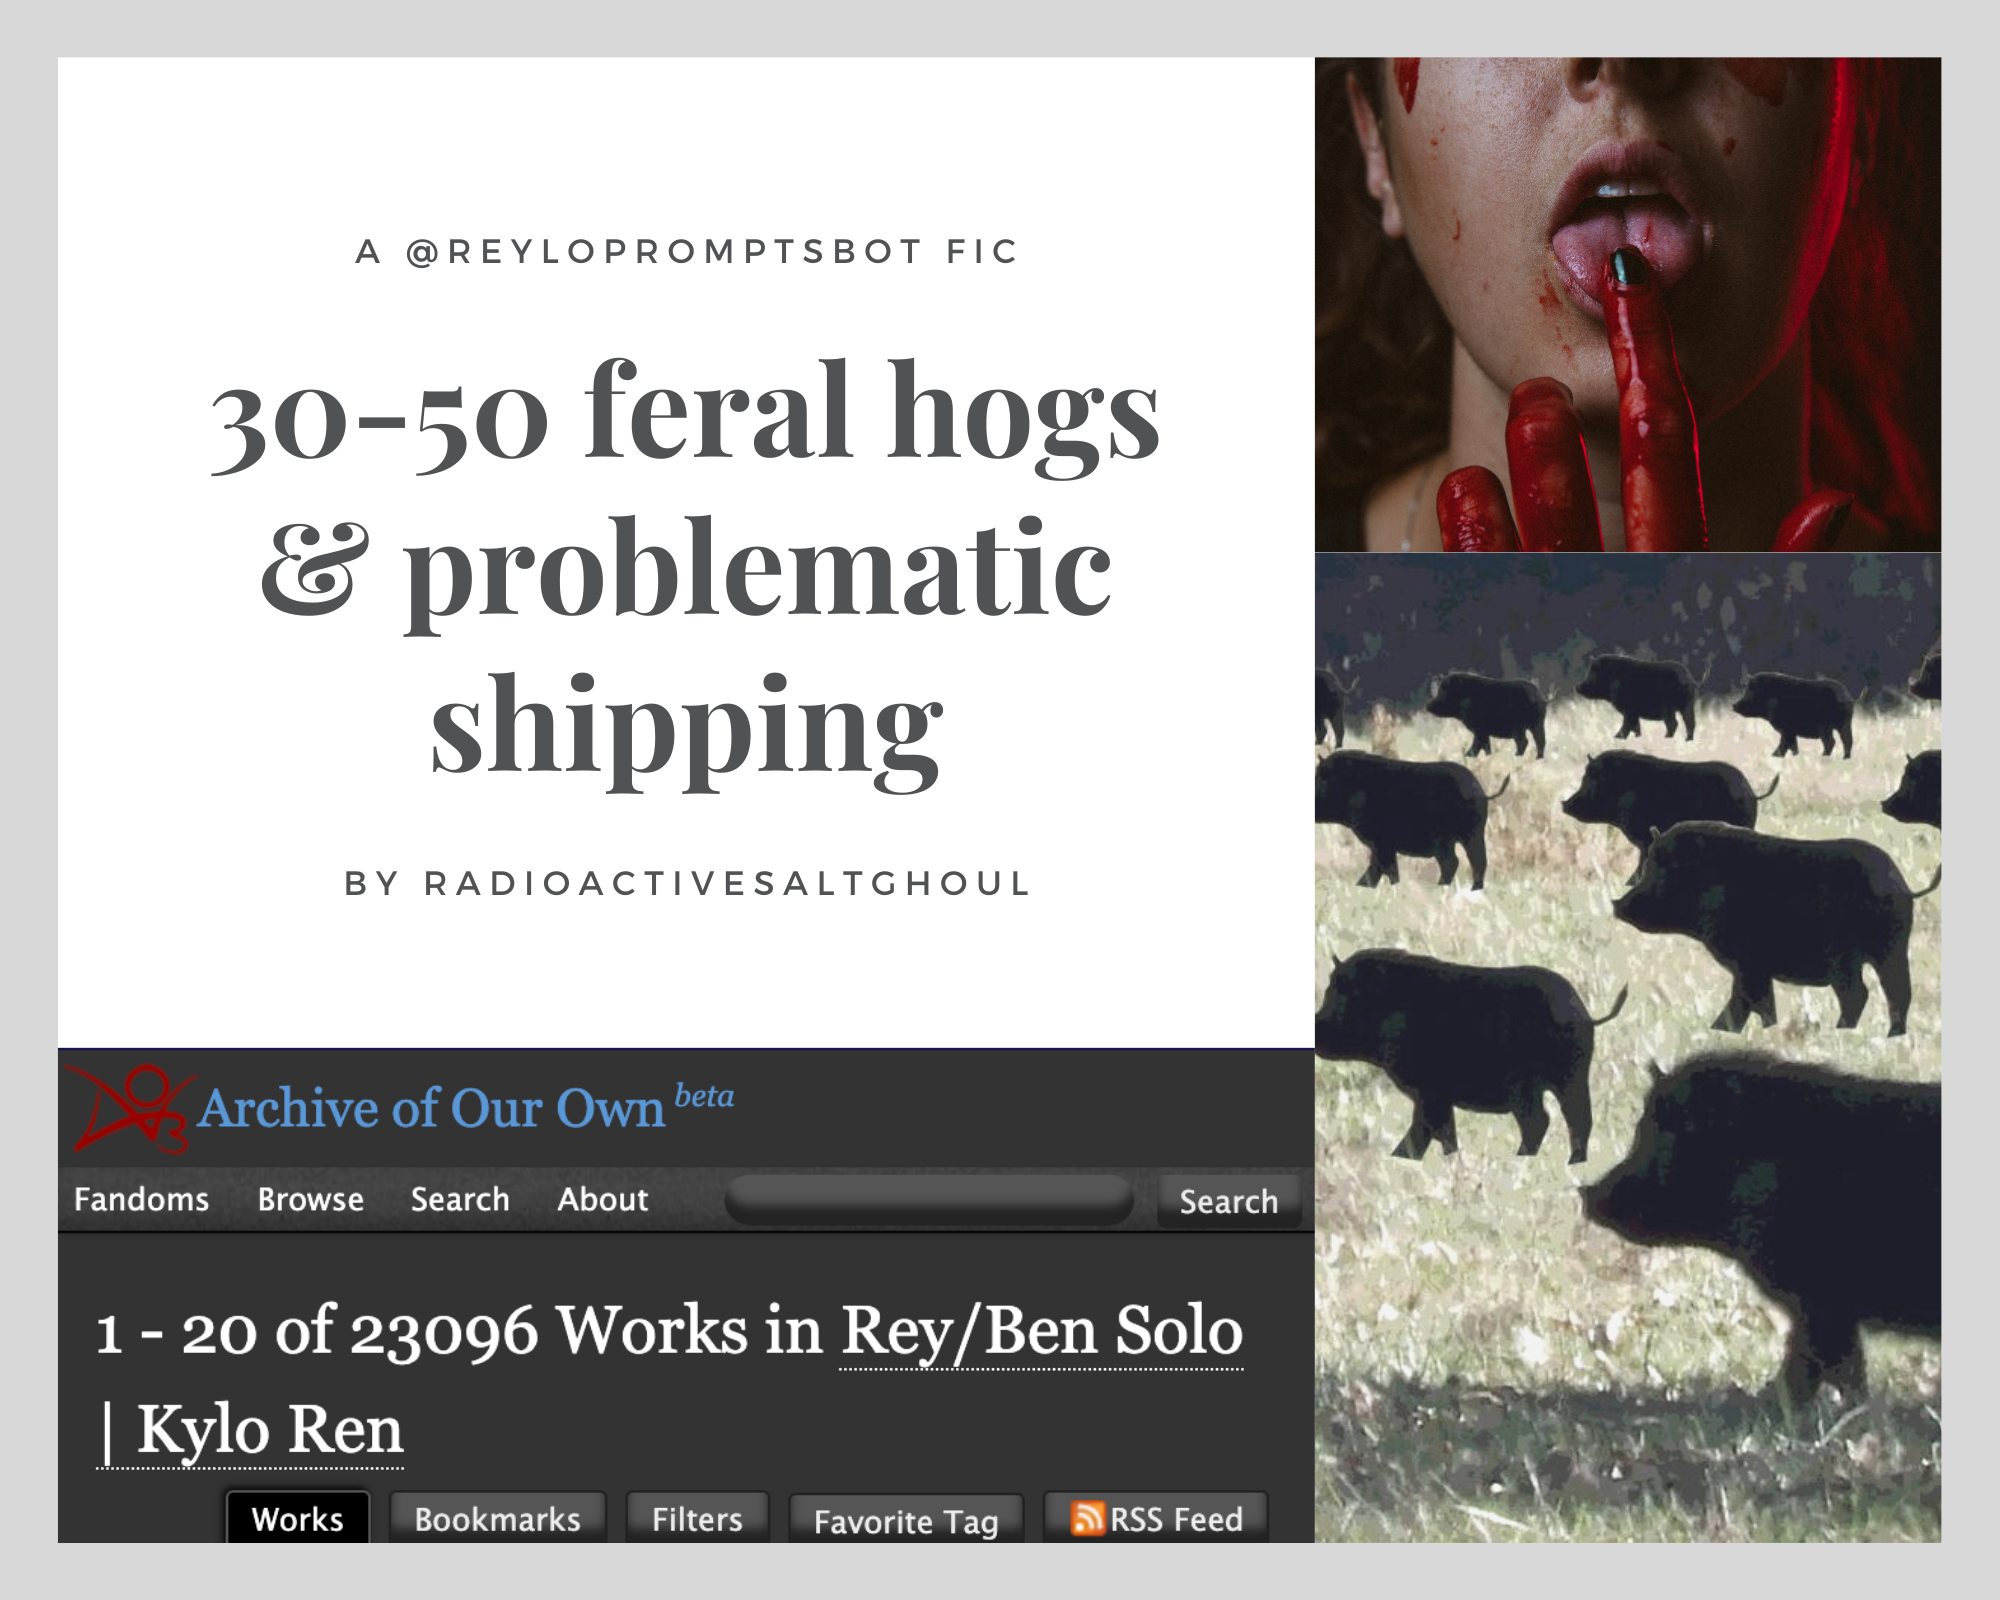 moodboard for 30-50 feral hogs & problematic shipping